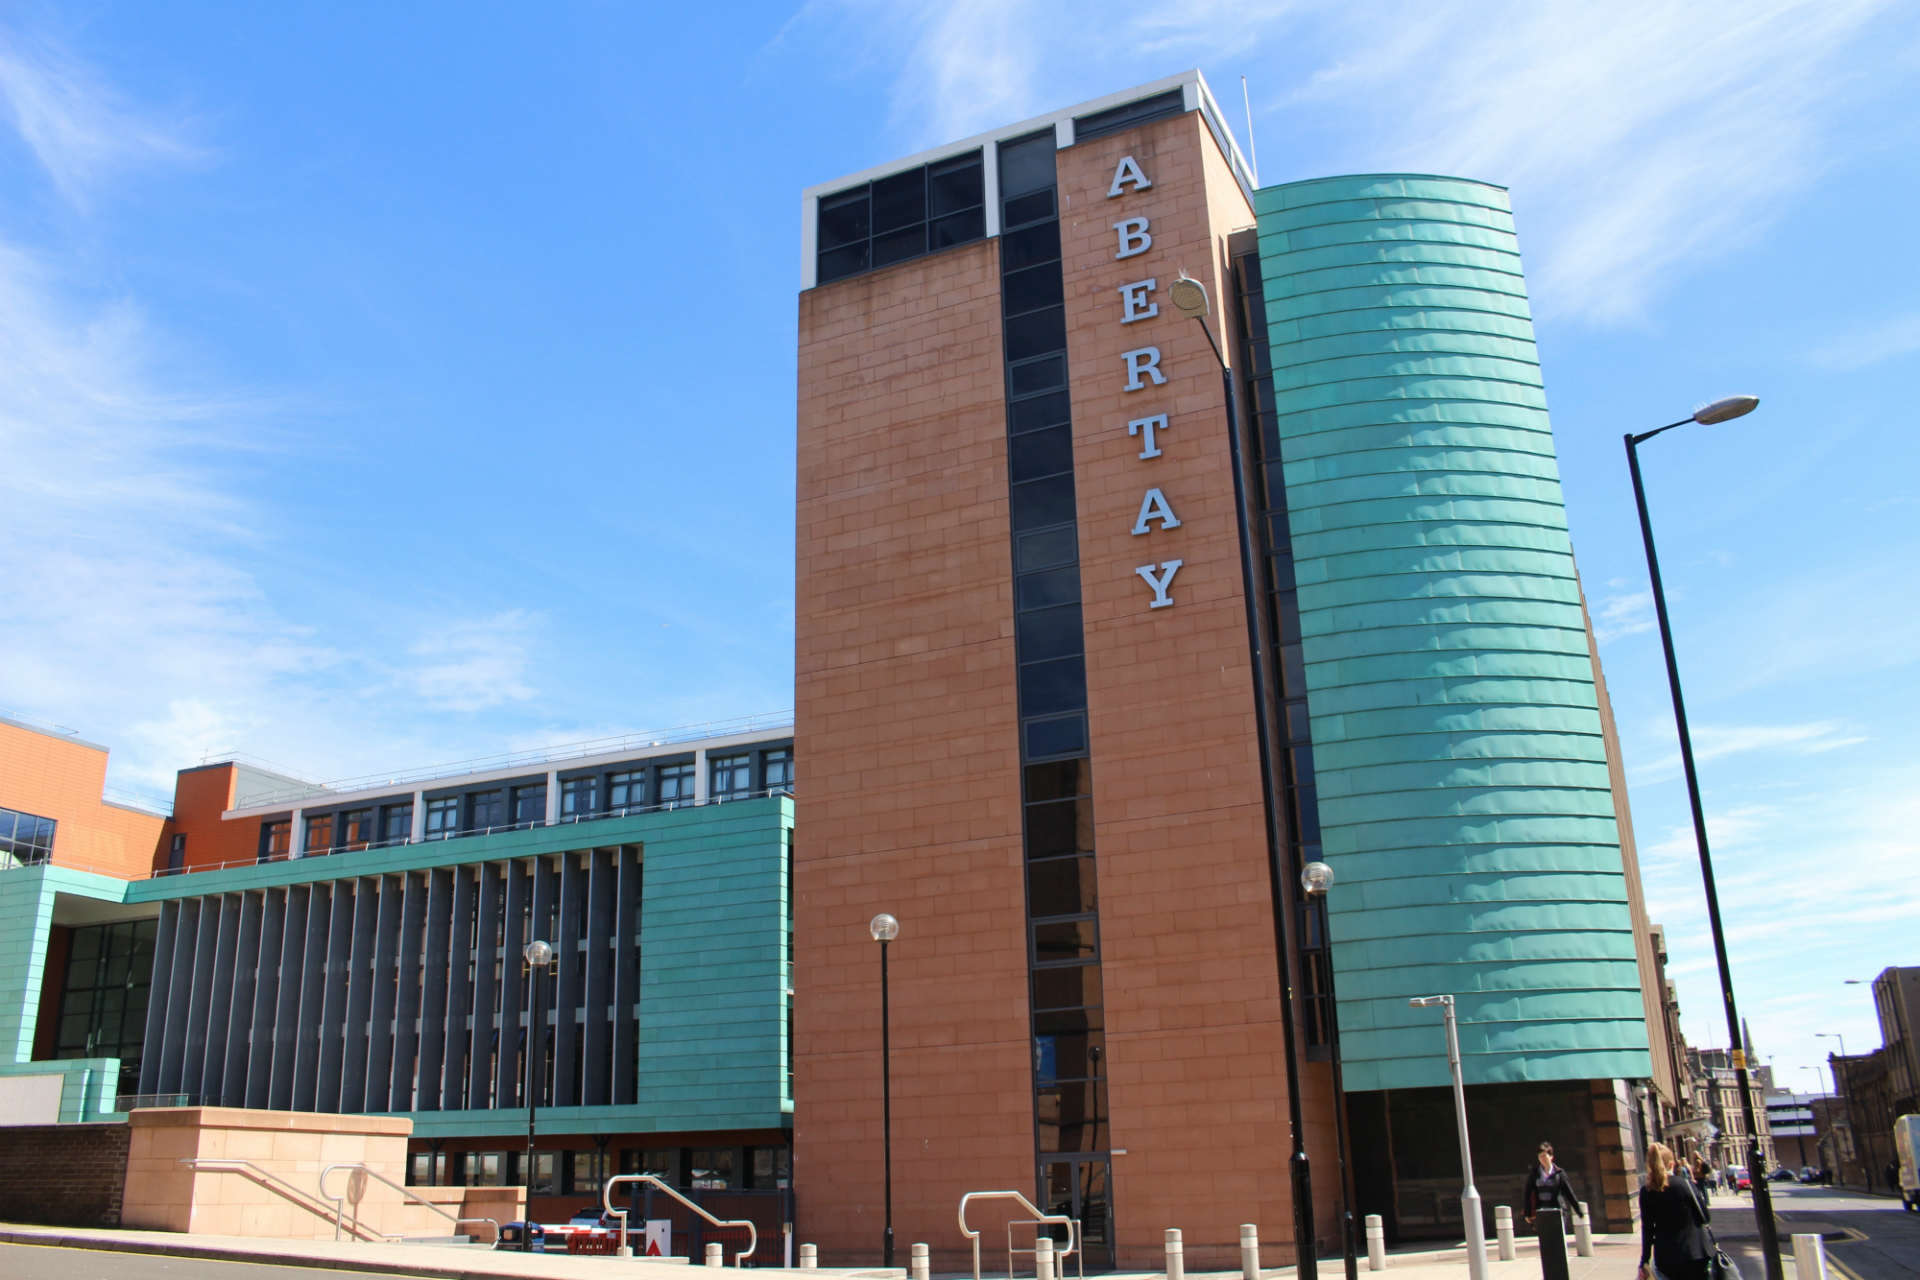 Public session to explore Abertay's future